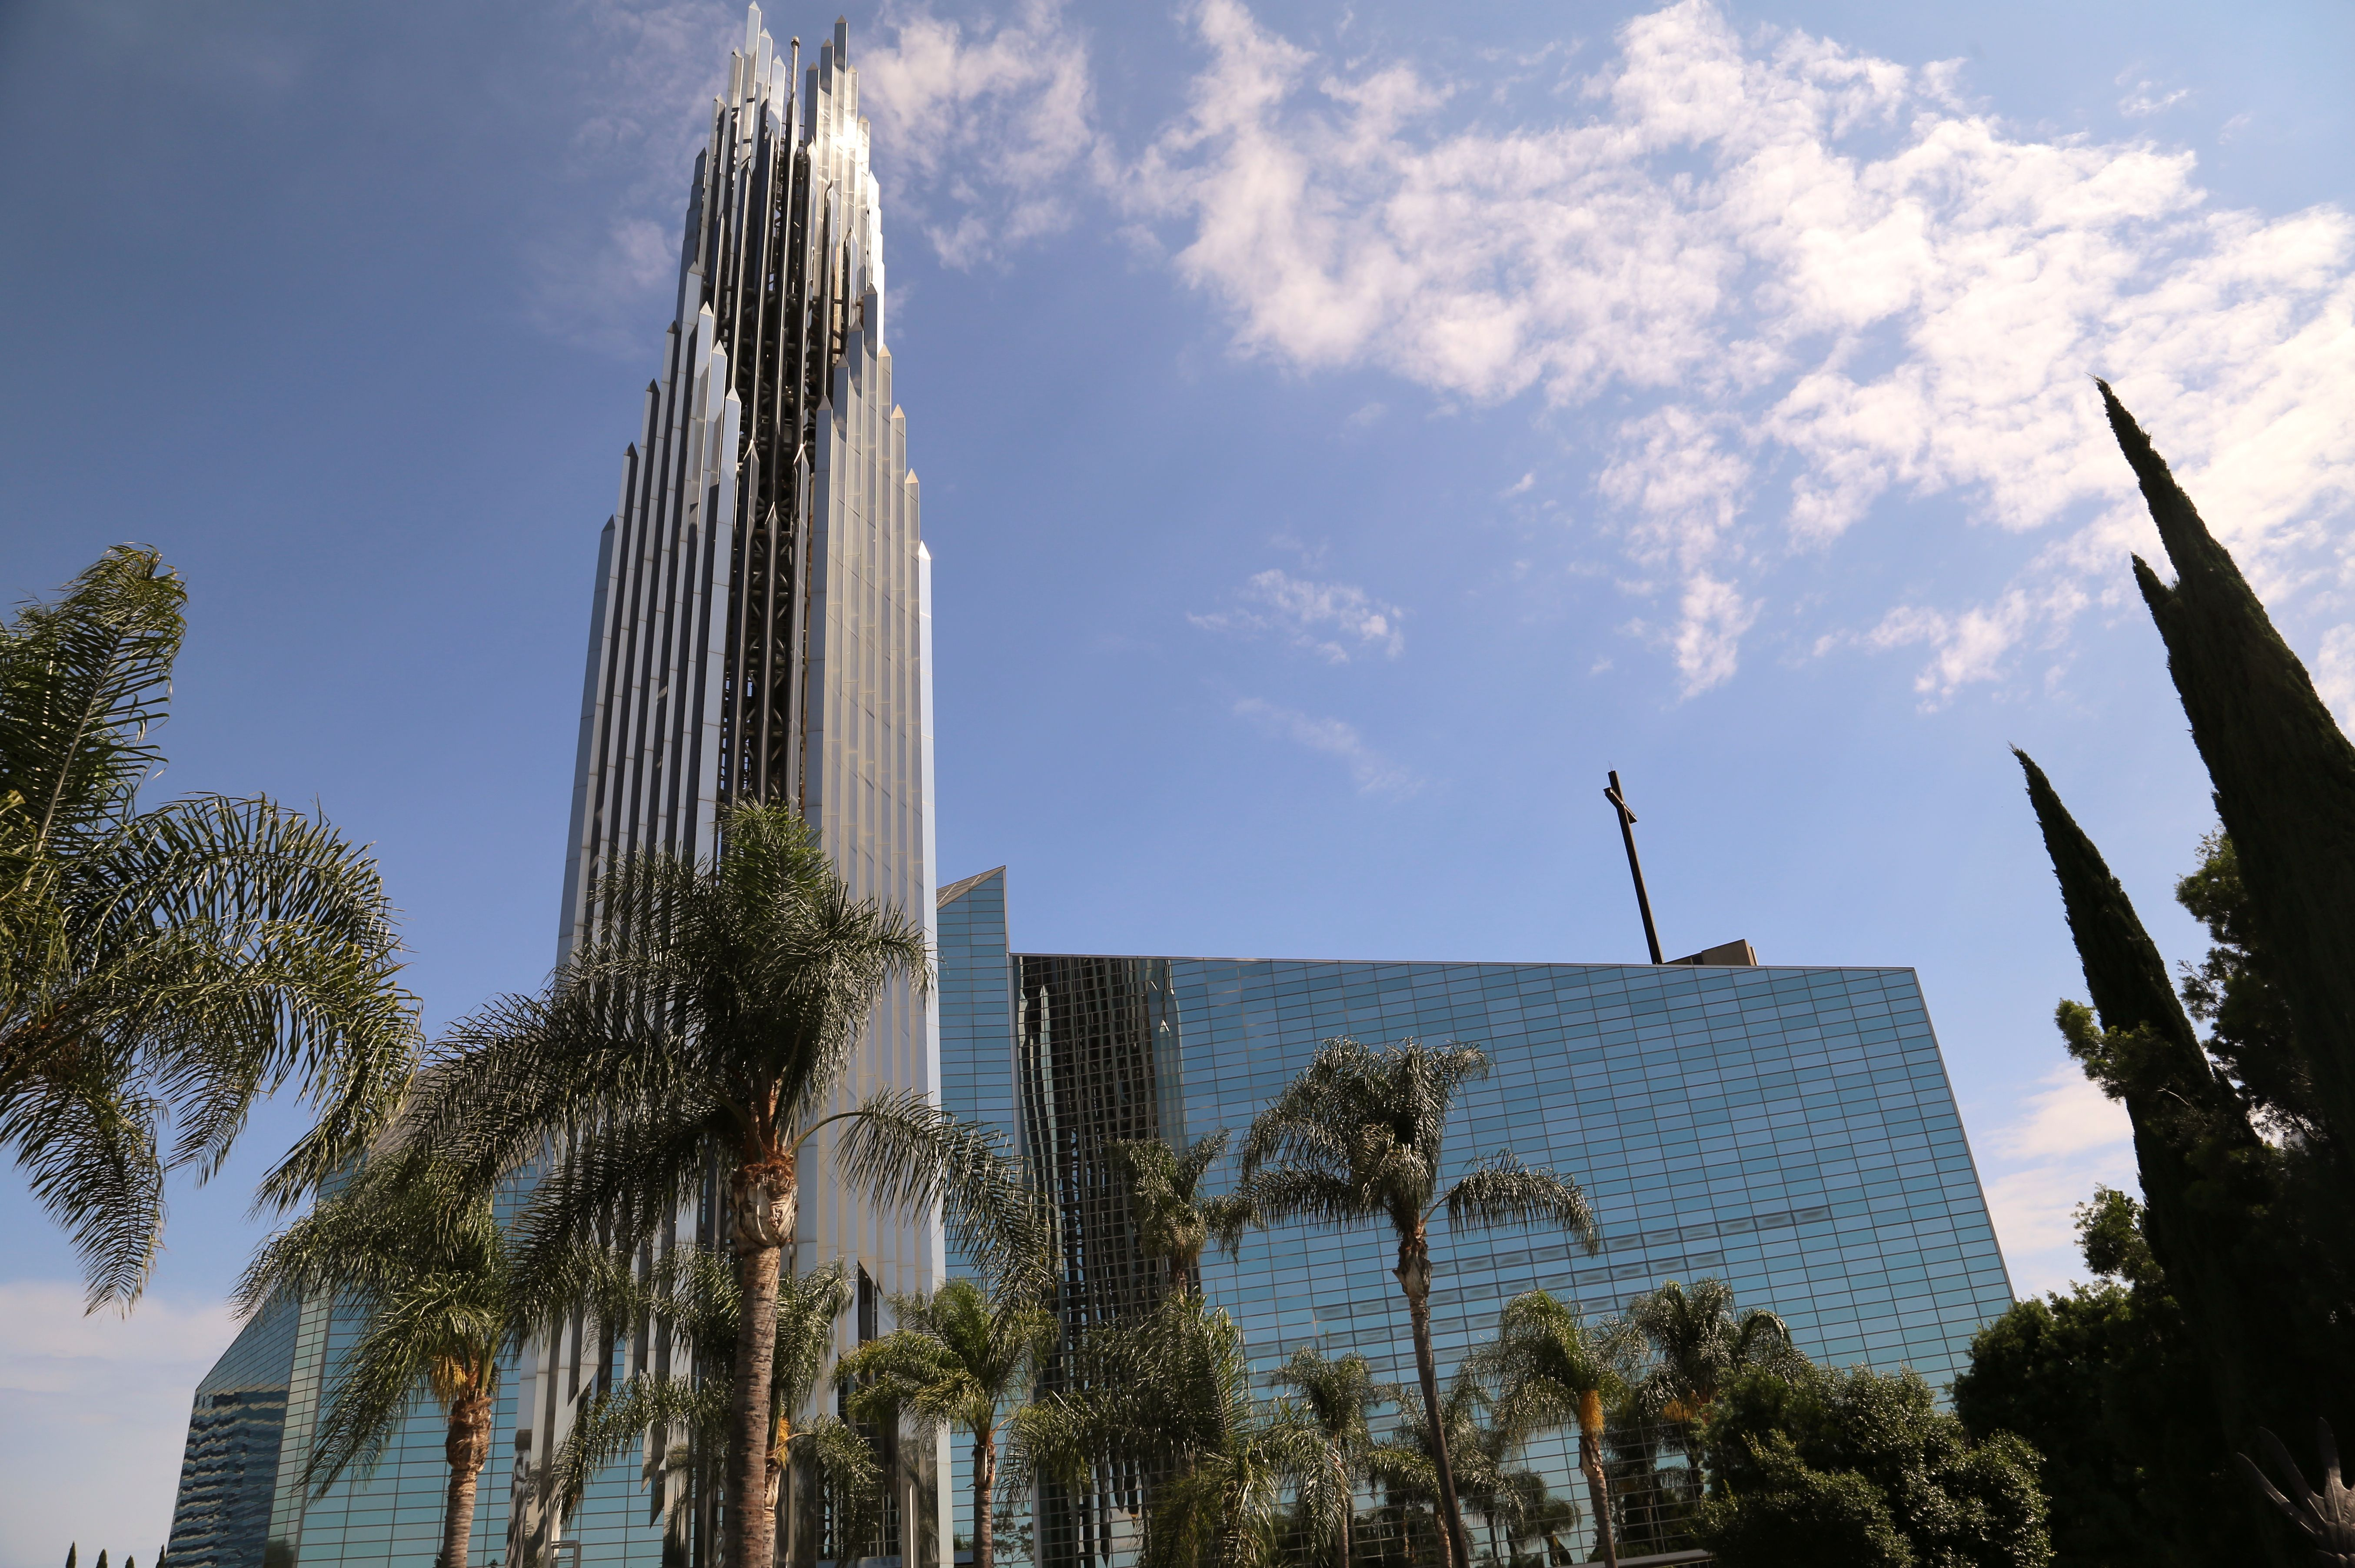 Christ Cathedral, Diocese of Orange county, Garden Grove, California, USA